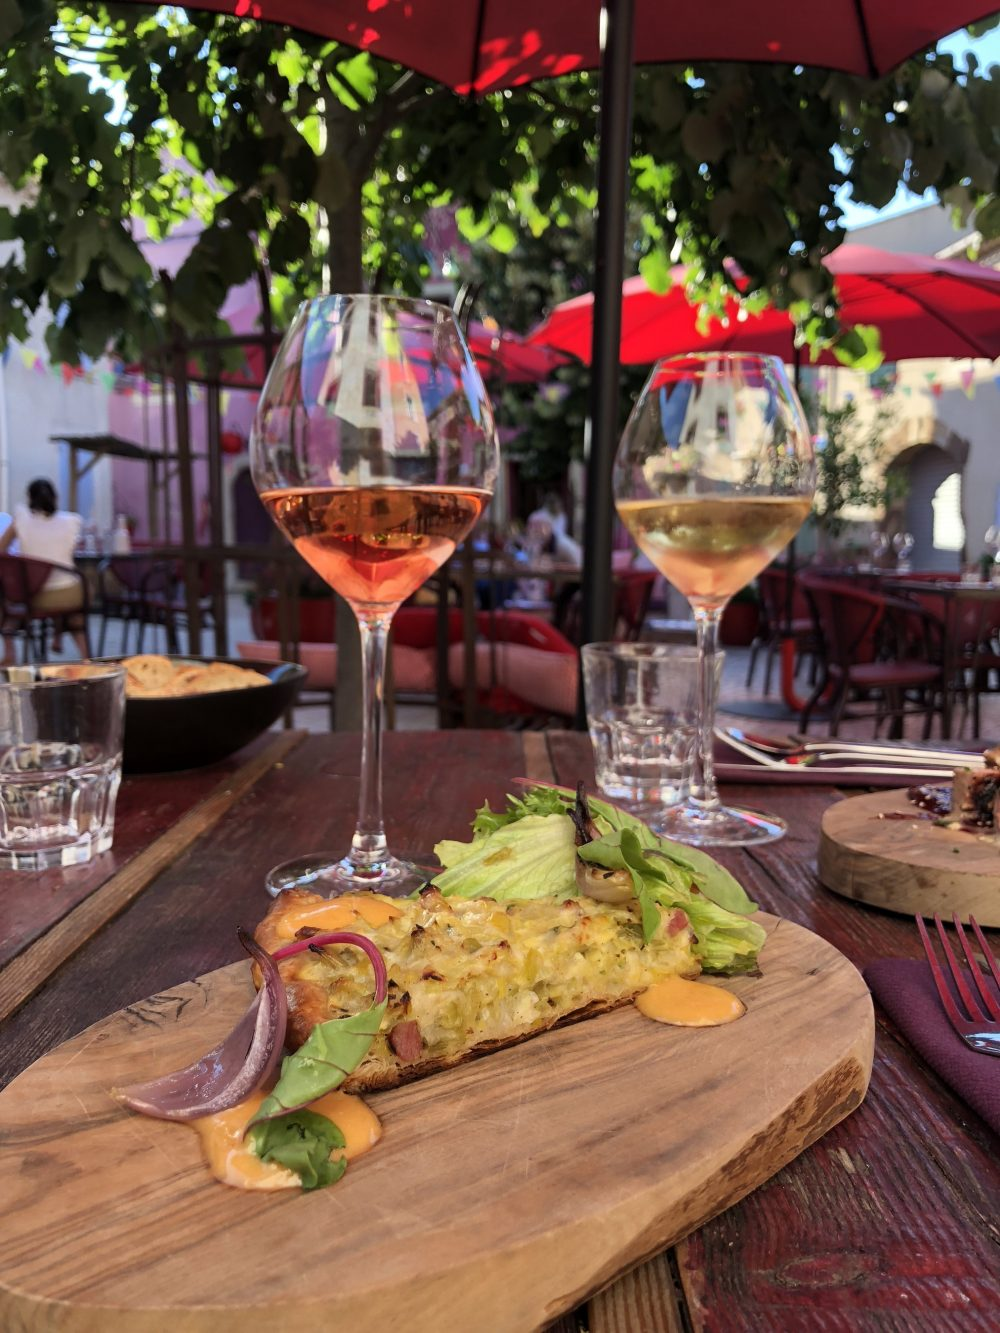 piece of quiche on a wooden board next to glasses of wine